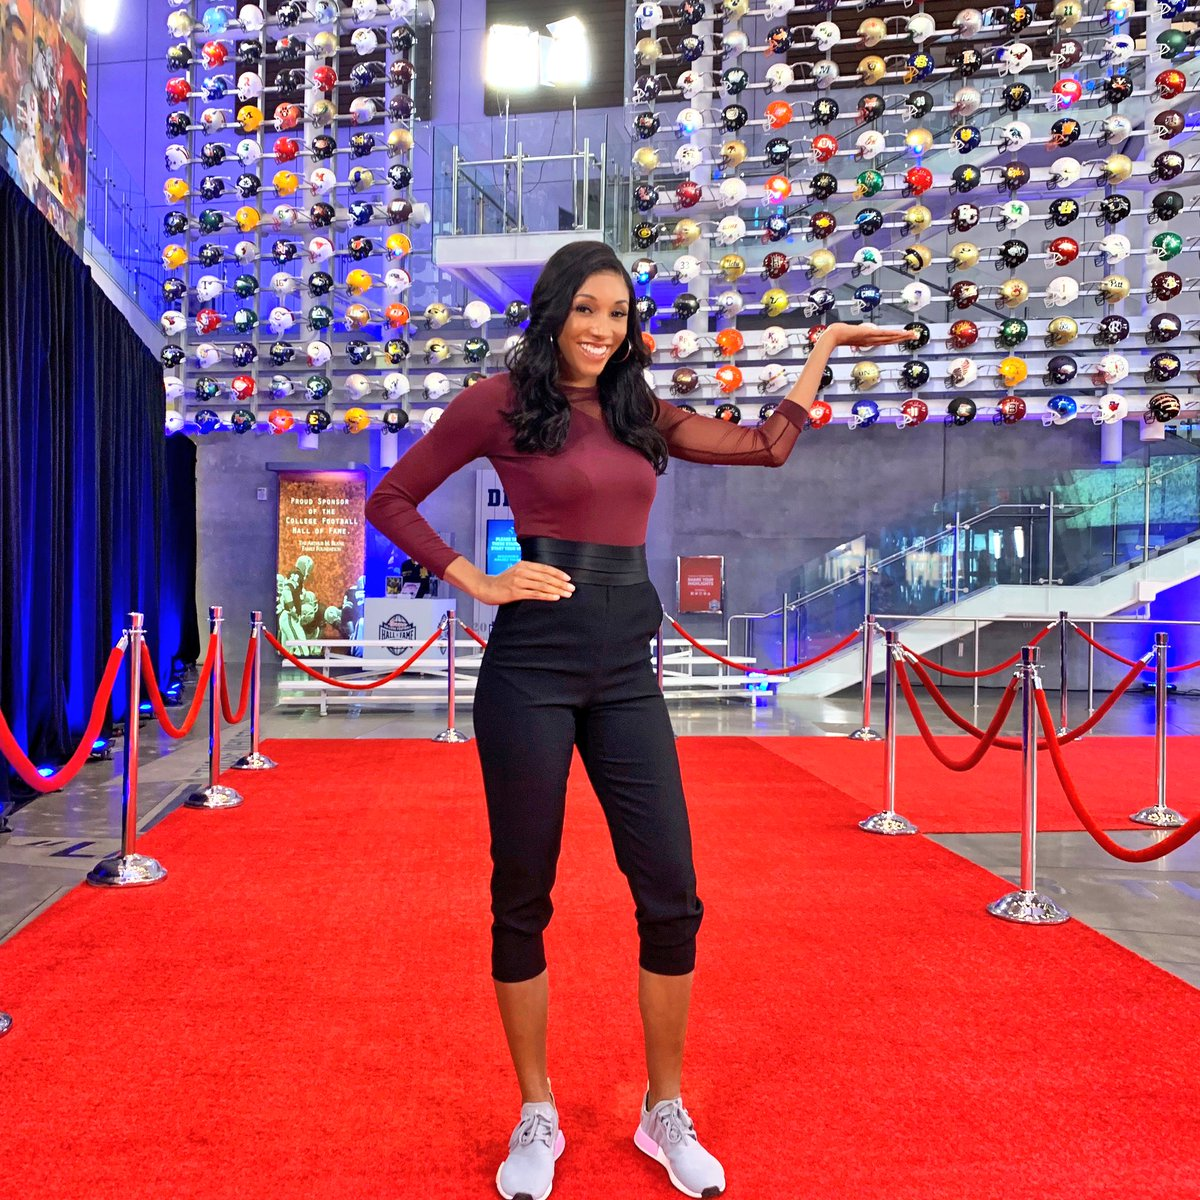 """Maria Taylor on Twitter: """"You never know who might stop by the red carpet!!  Watch the College Football Awards tonight on ESPN 7ET and the red carpet  special 6ET on ESPNU… https://t.co/iOHhwQKWG8"""""""